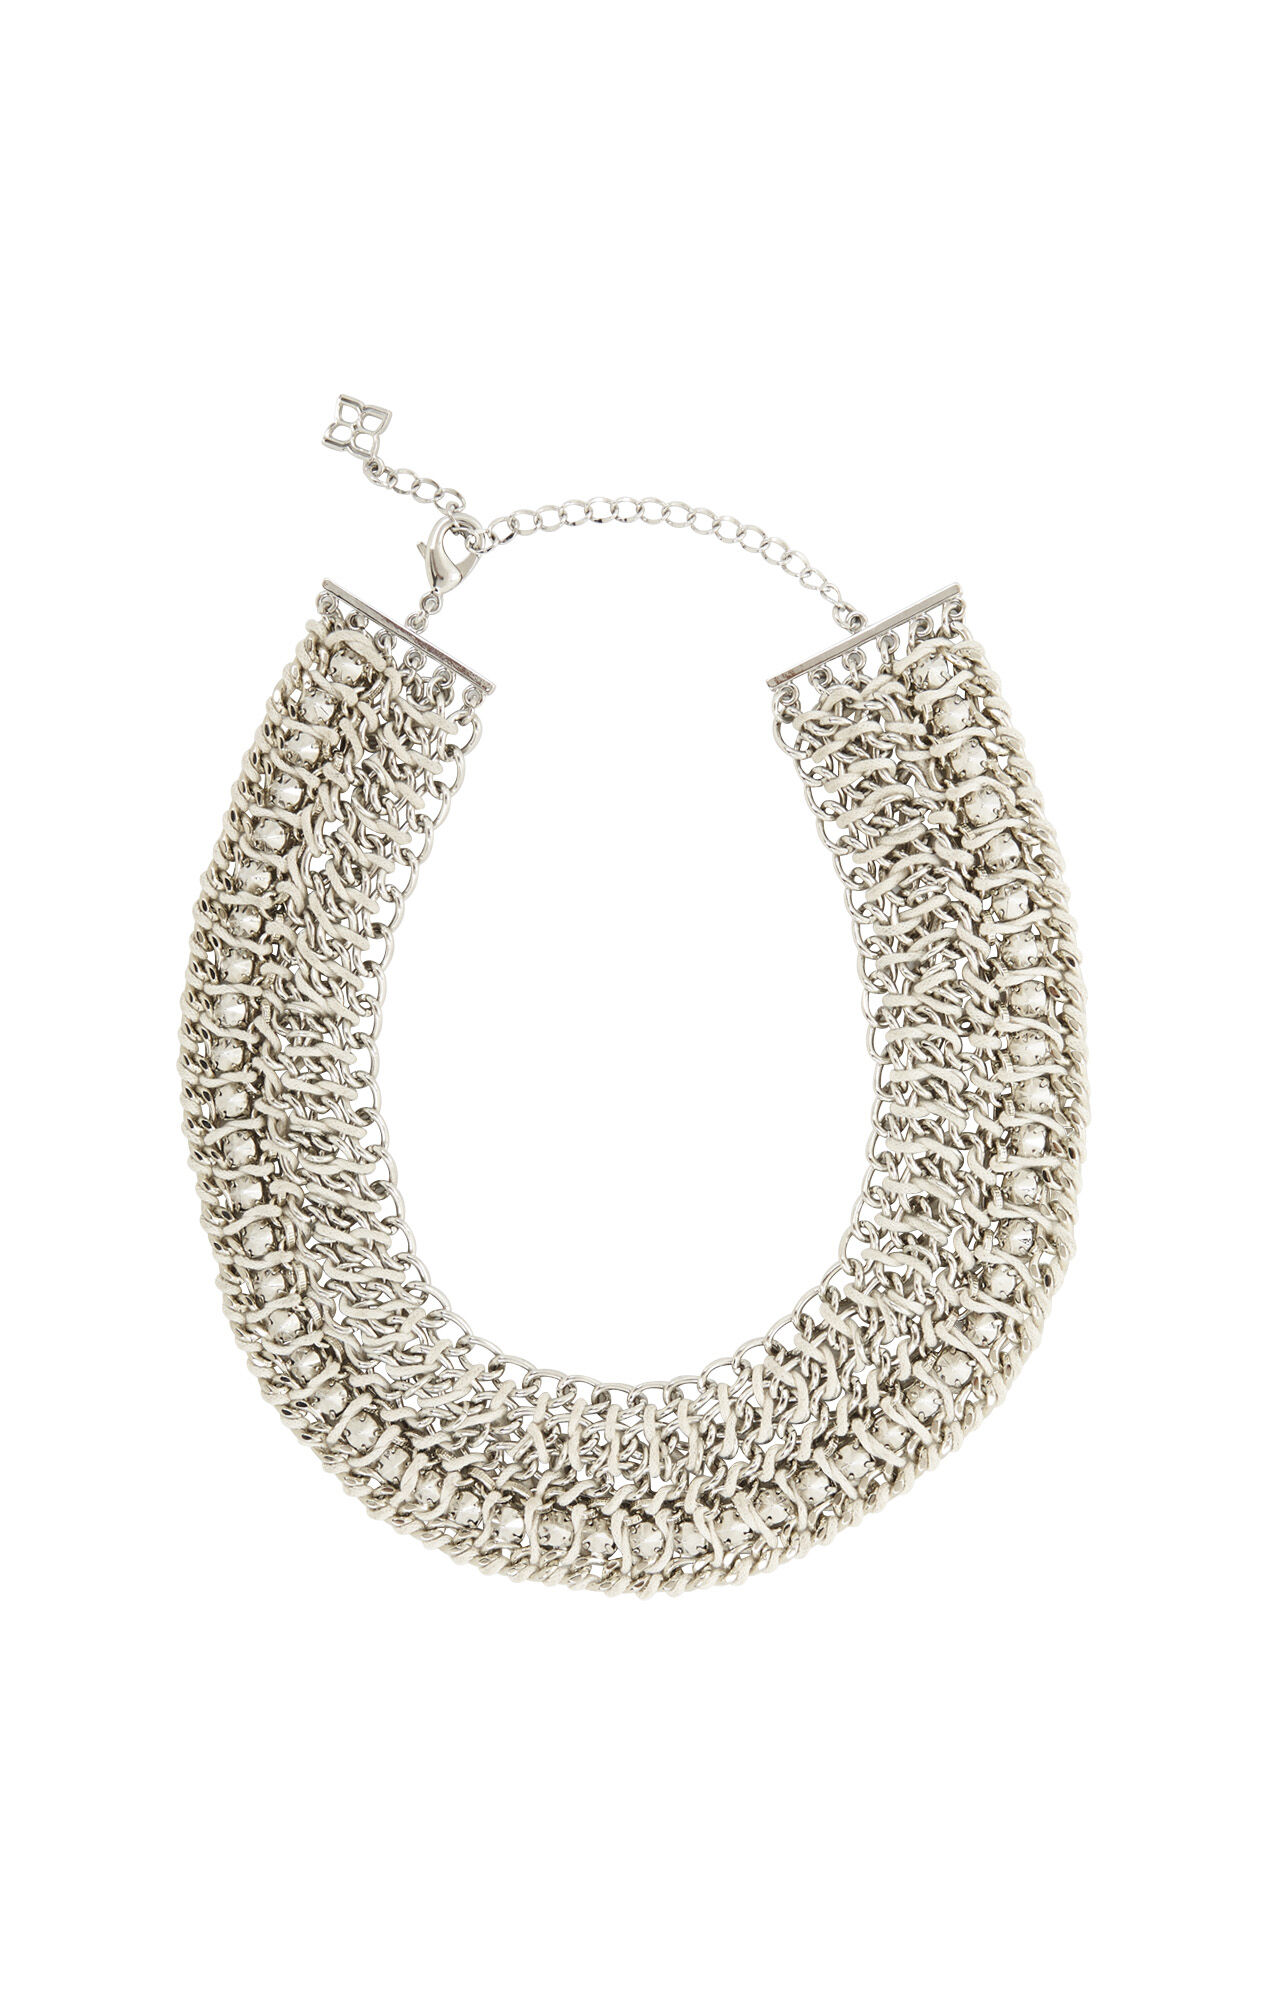 Woven-Chain Spike Necklace